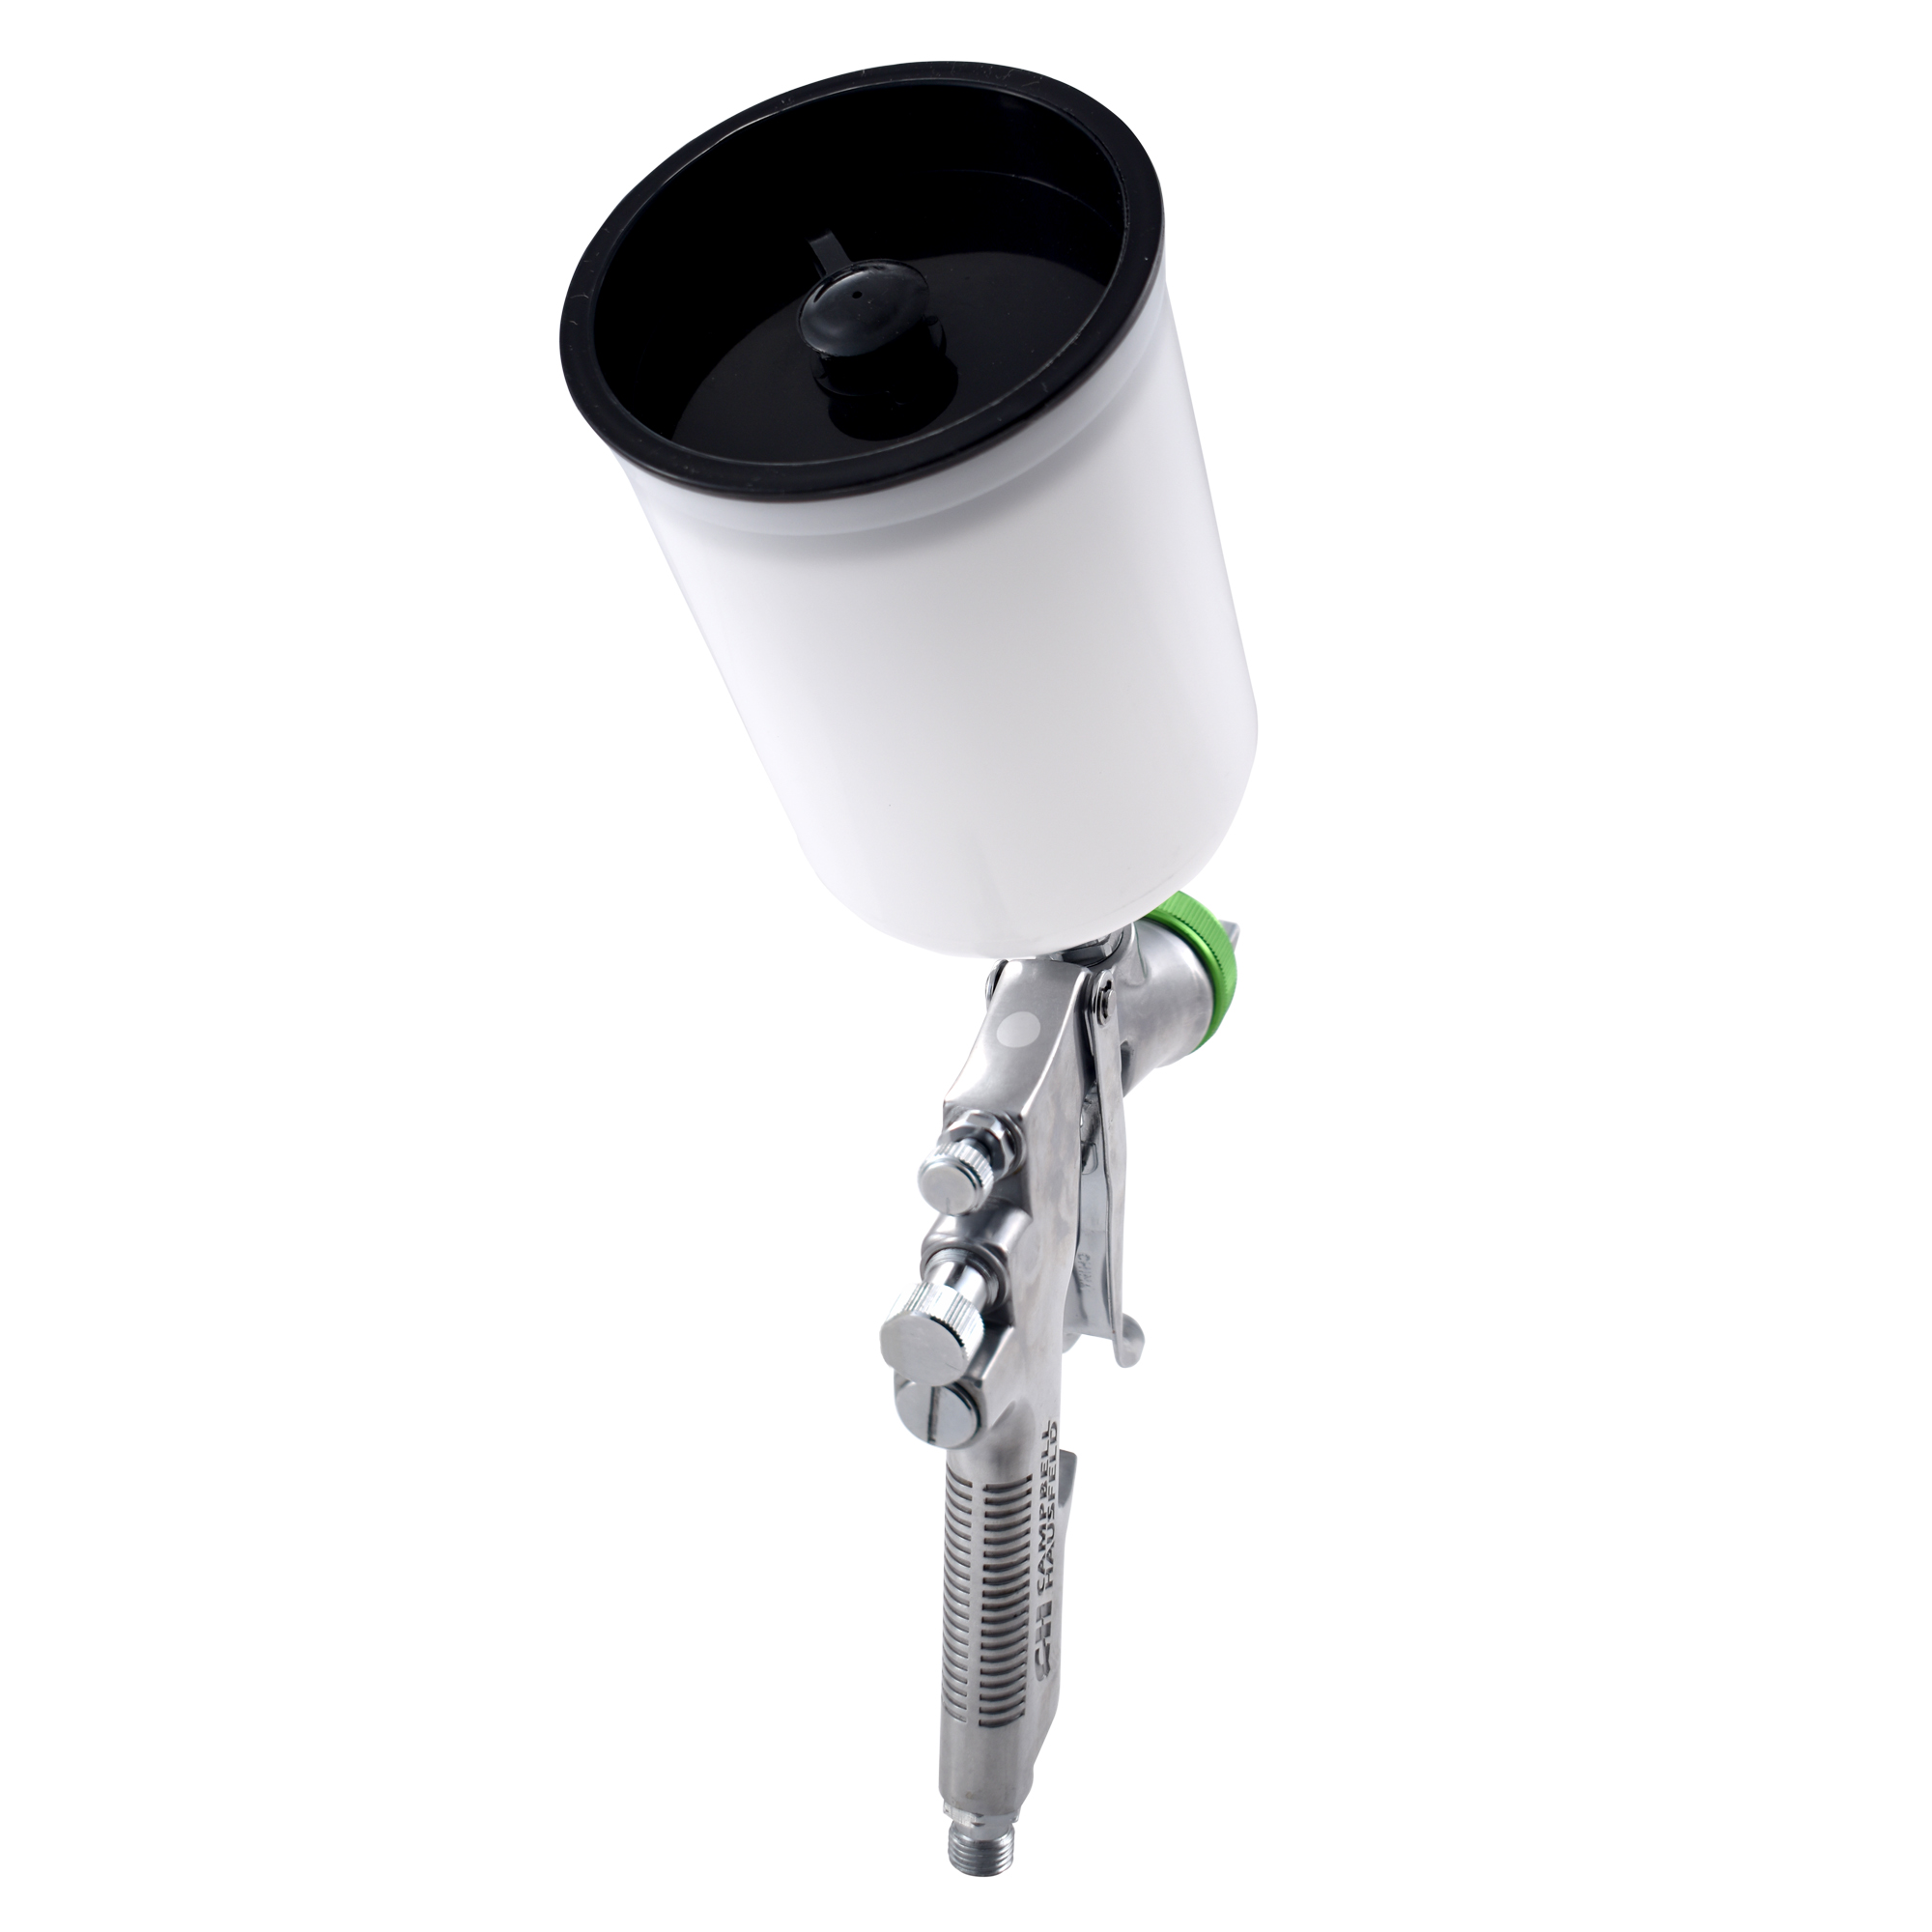 Campbell Hausfeld Spray Gun, HVLP Gravity Feed (DH790000AV) product image alt